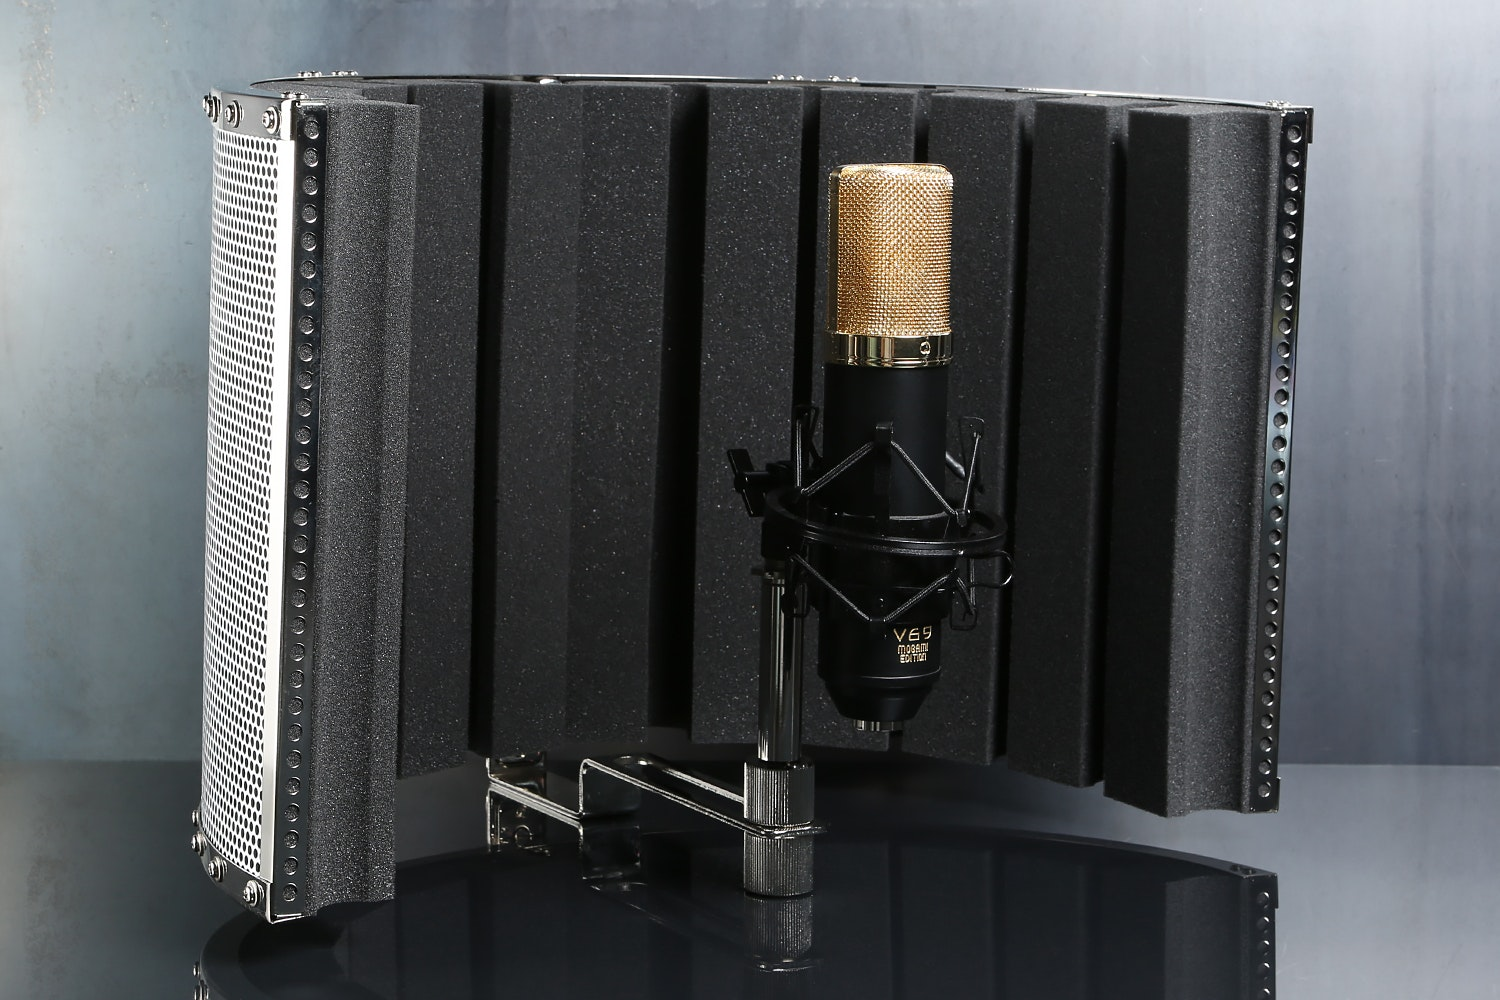 MXL v69 Mogami with CAD AS32 Acoustic Shield